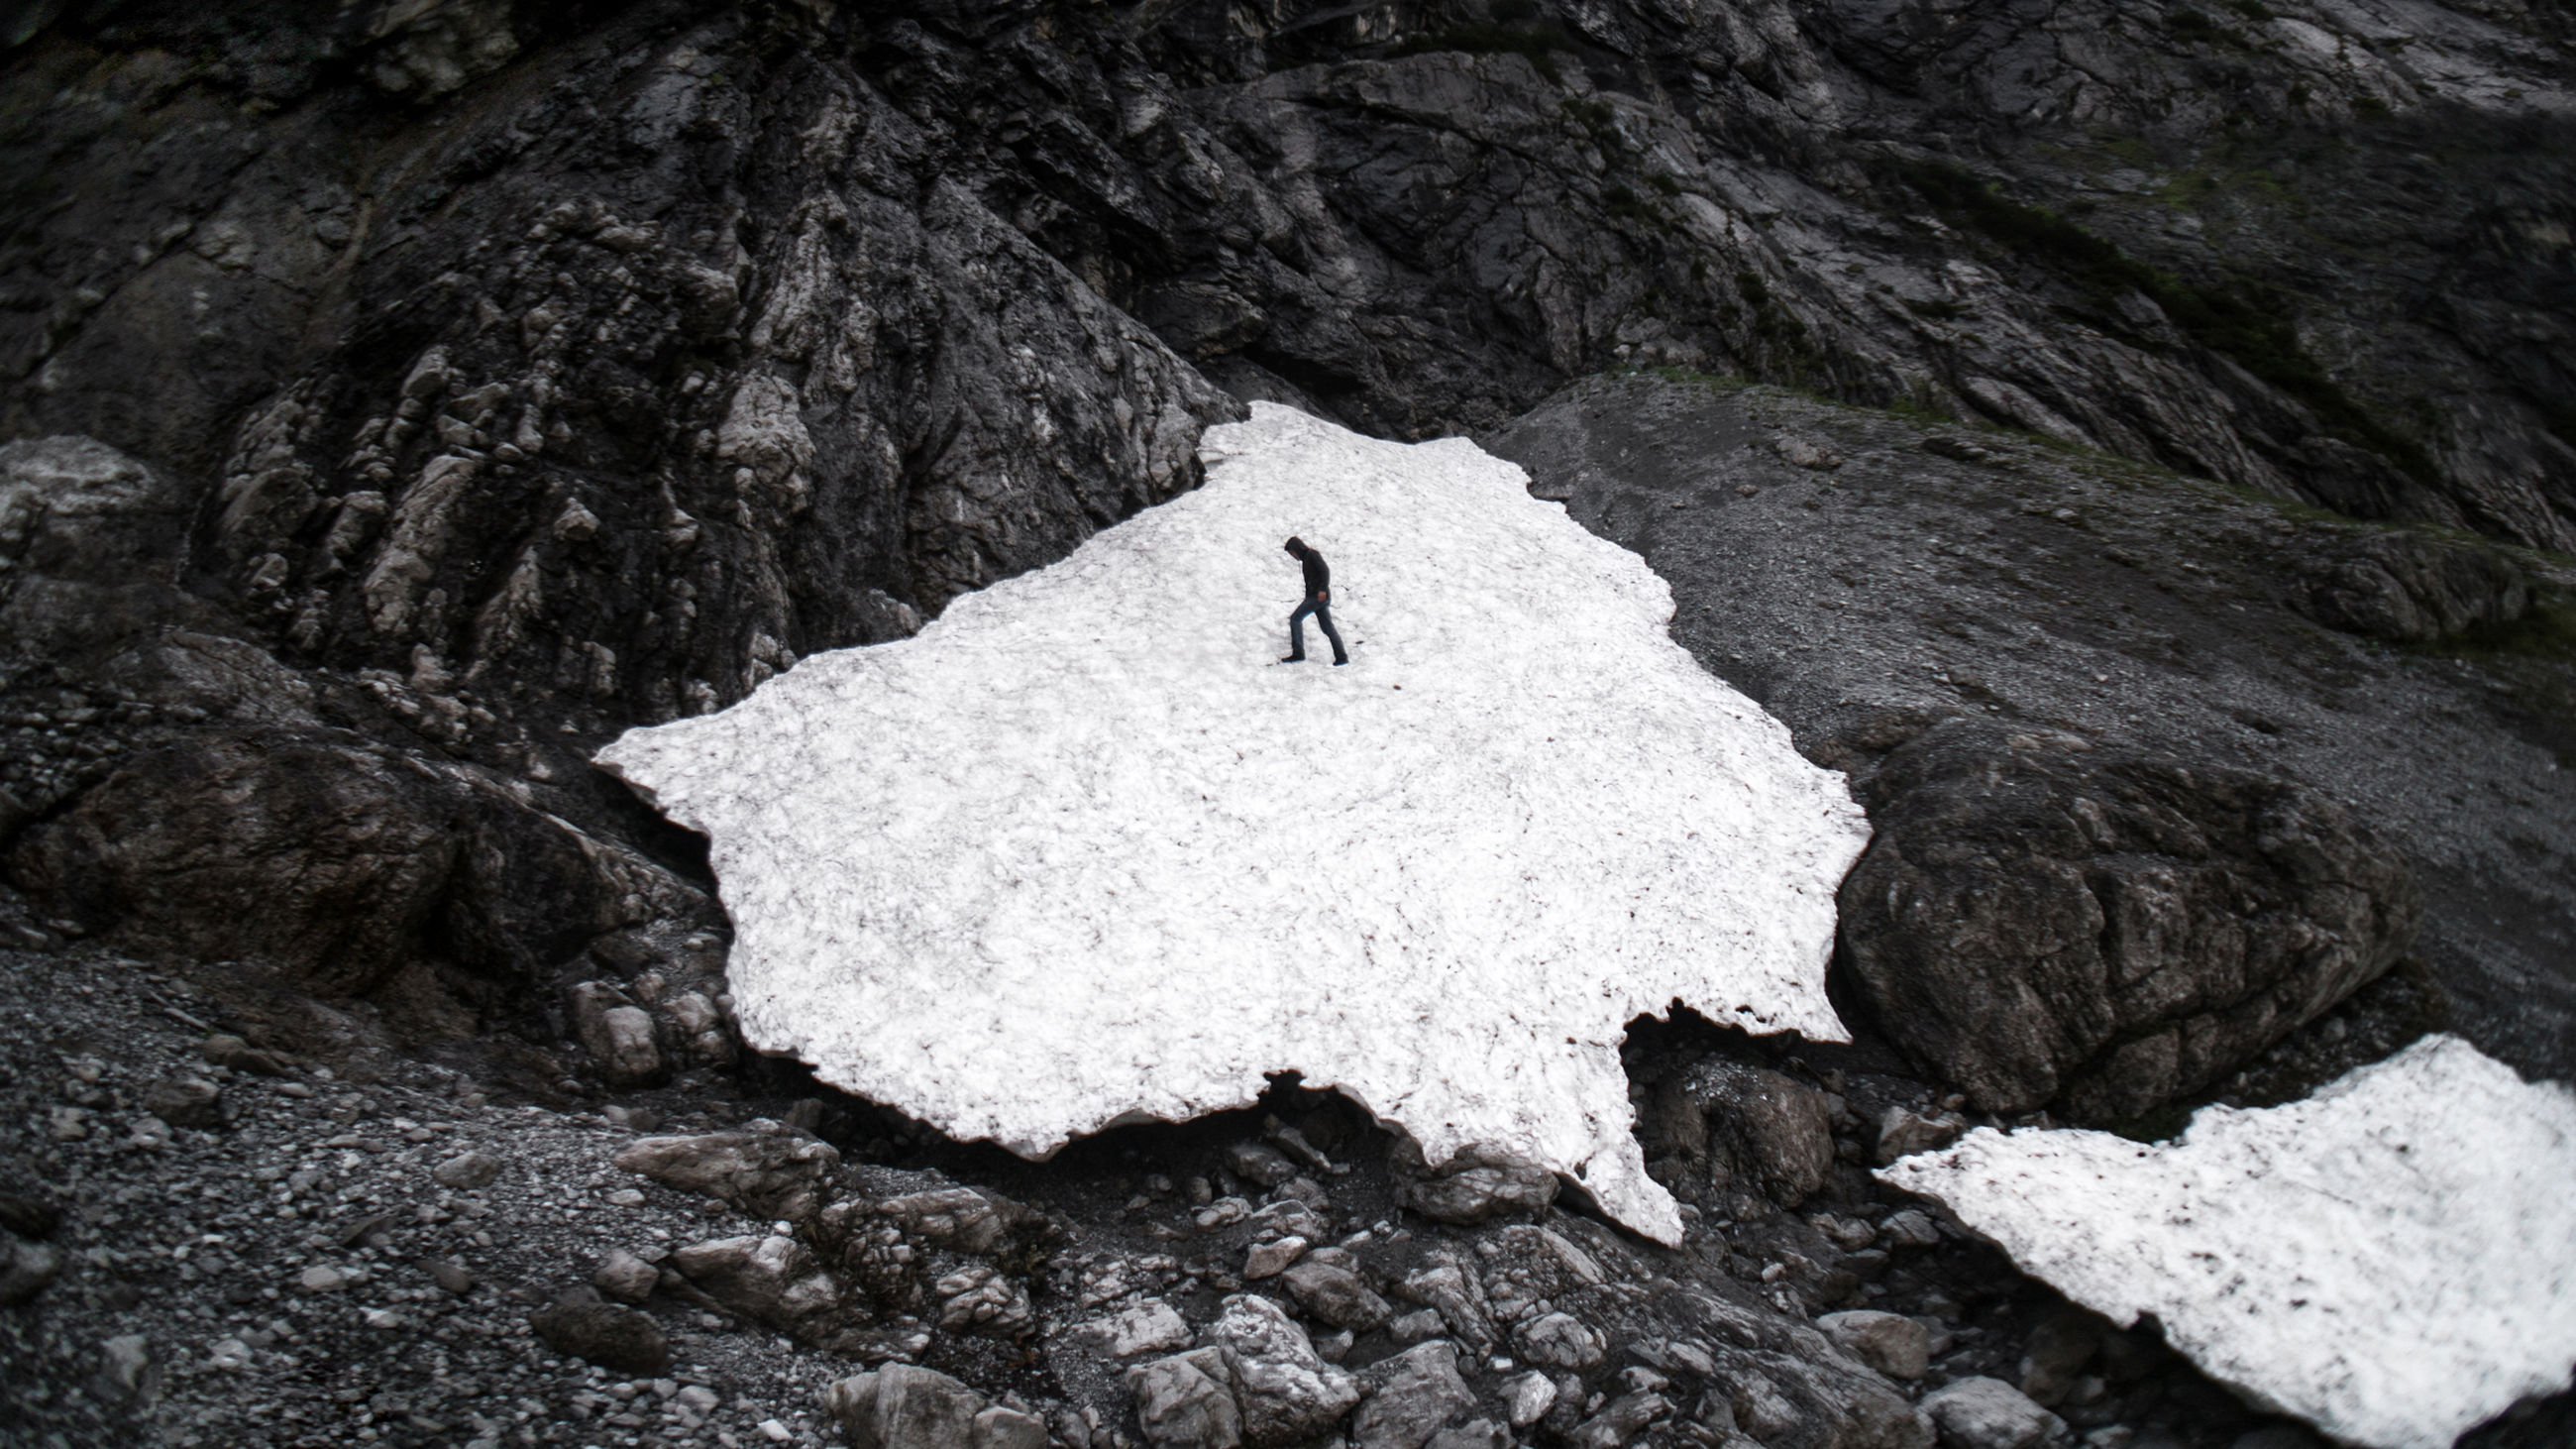 rock - object, adventure, nature, outdoors, day, cliff, mountain, one person, animal themes, people, glacial